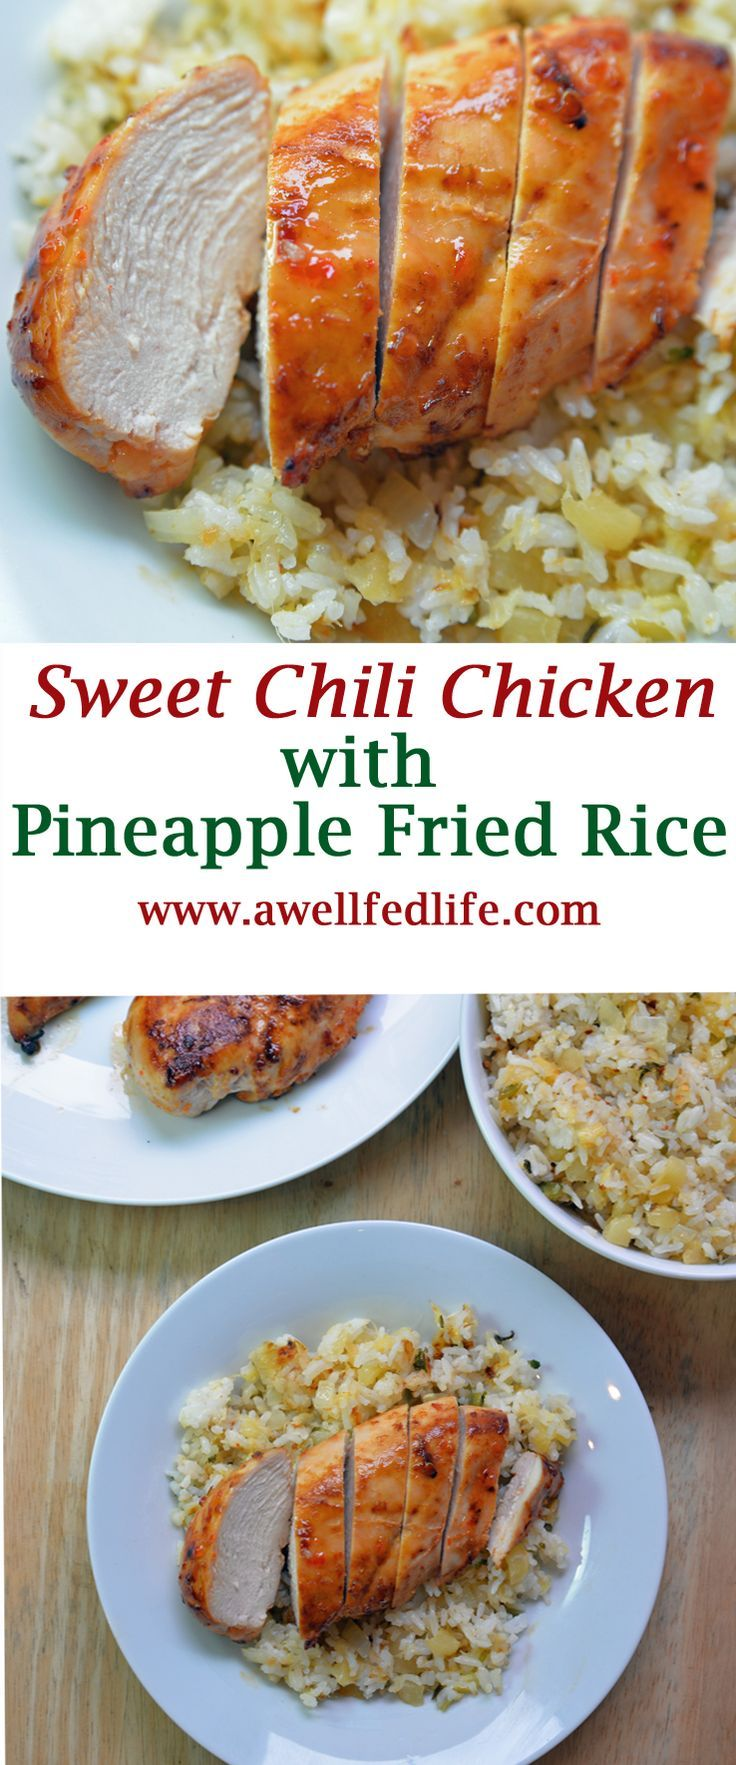 Sweet Chili Chicken with Pineapple Fried Rice is a sticky, sweet, spicy dinner you will crave. This recipe is healthy and makes great leftovers. http://www.awellfedlife.com/2018/01/sweet-chili-chicken.html